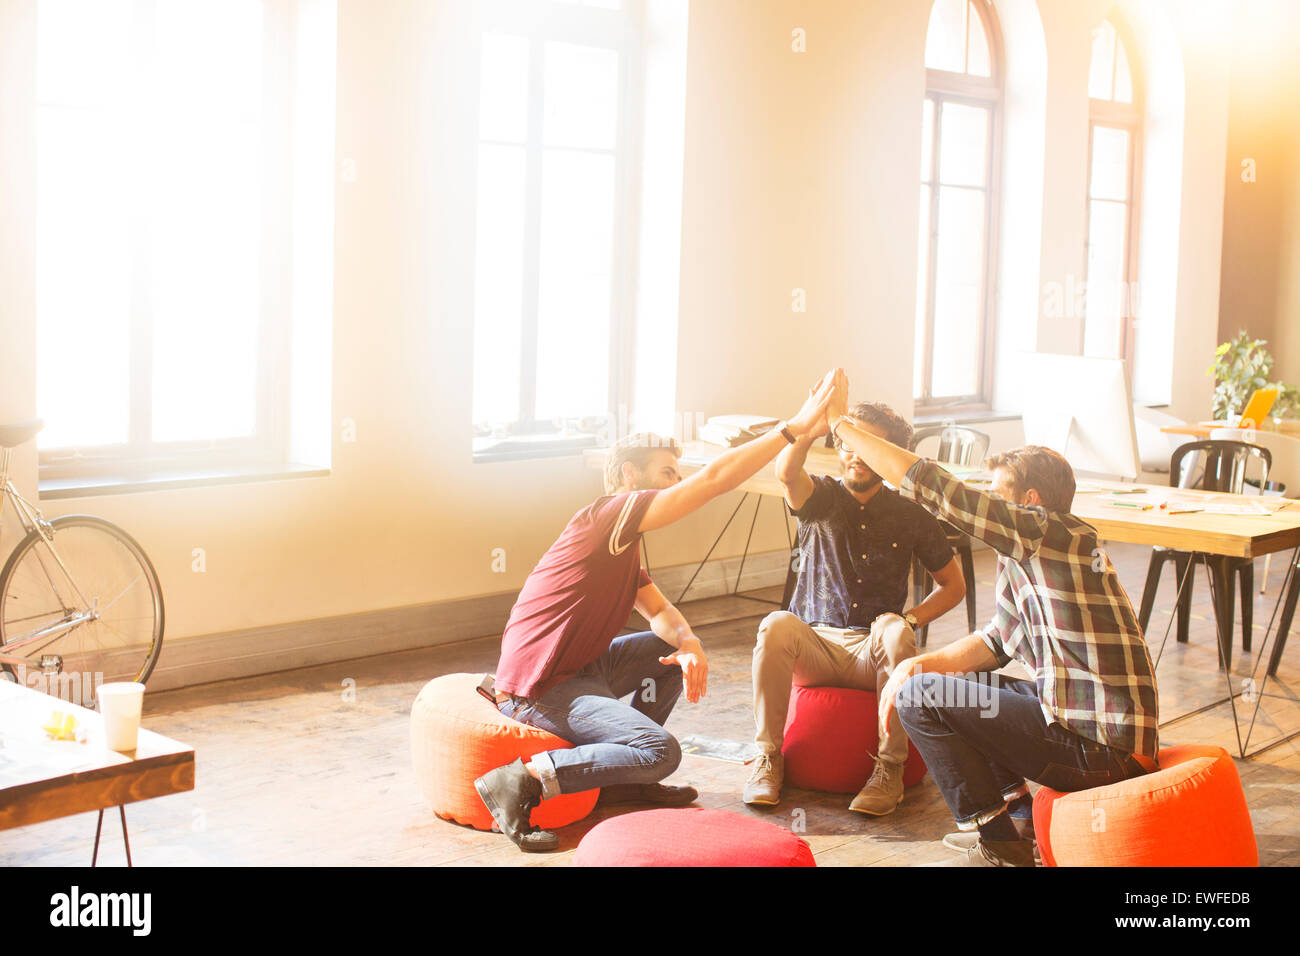 Creative business people joining hands in circle in sunny office - Stock Image